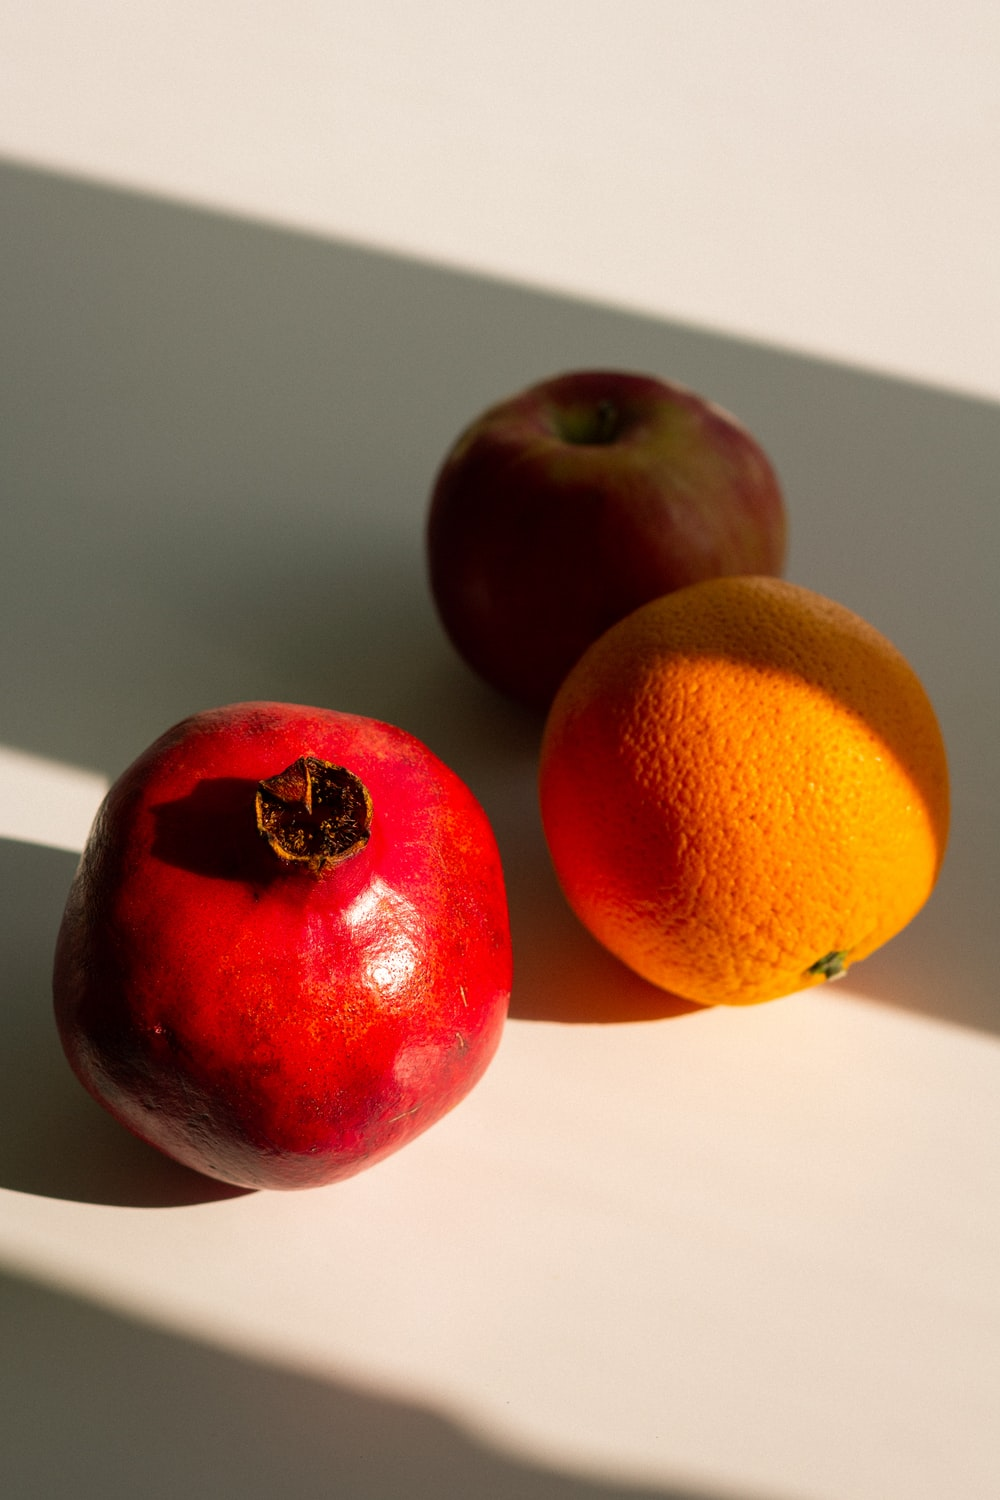 orange and apple fruits on white table